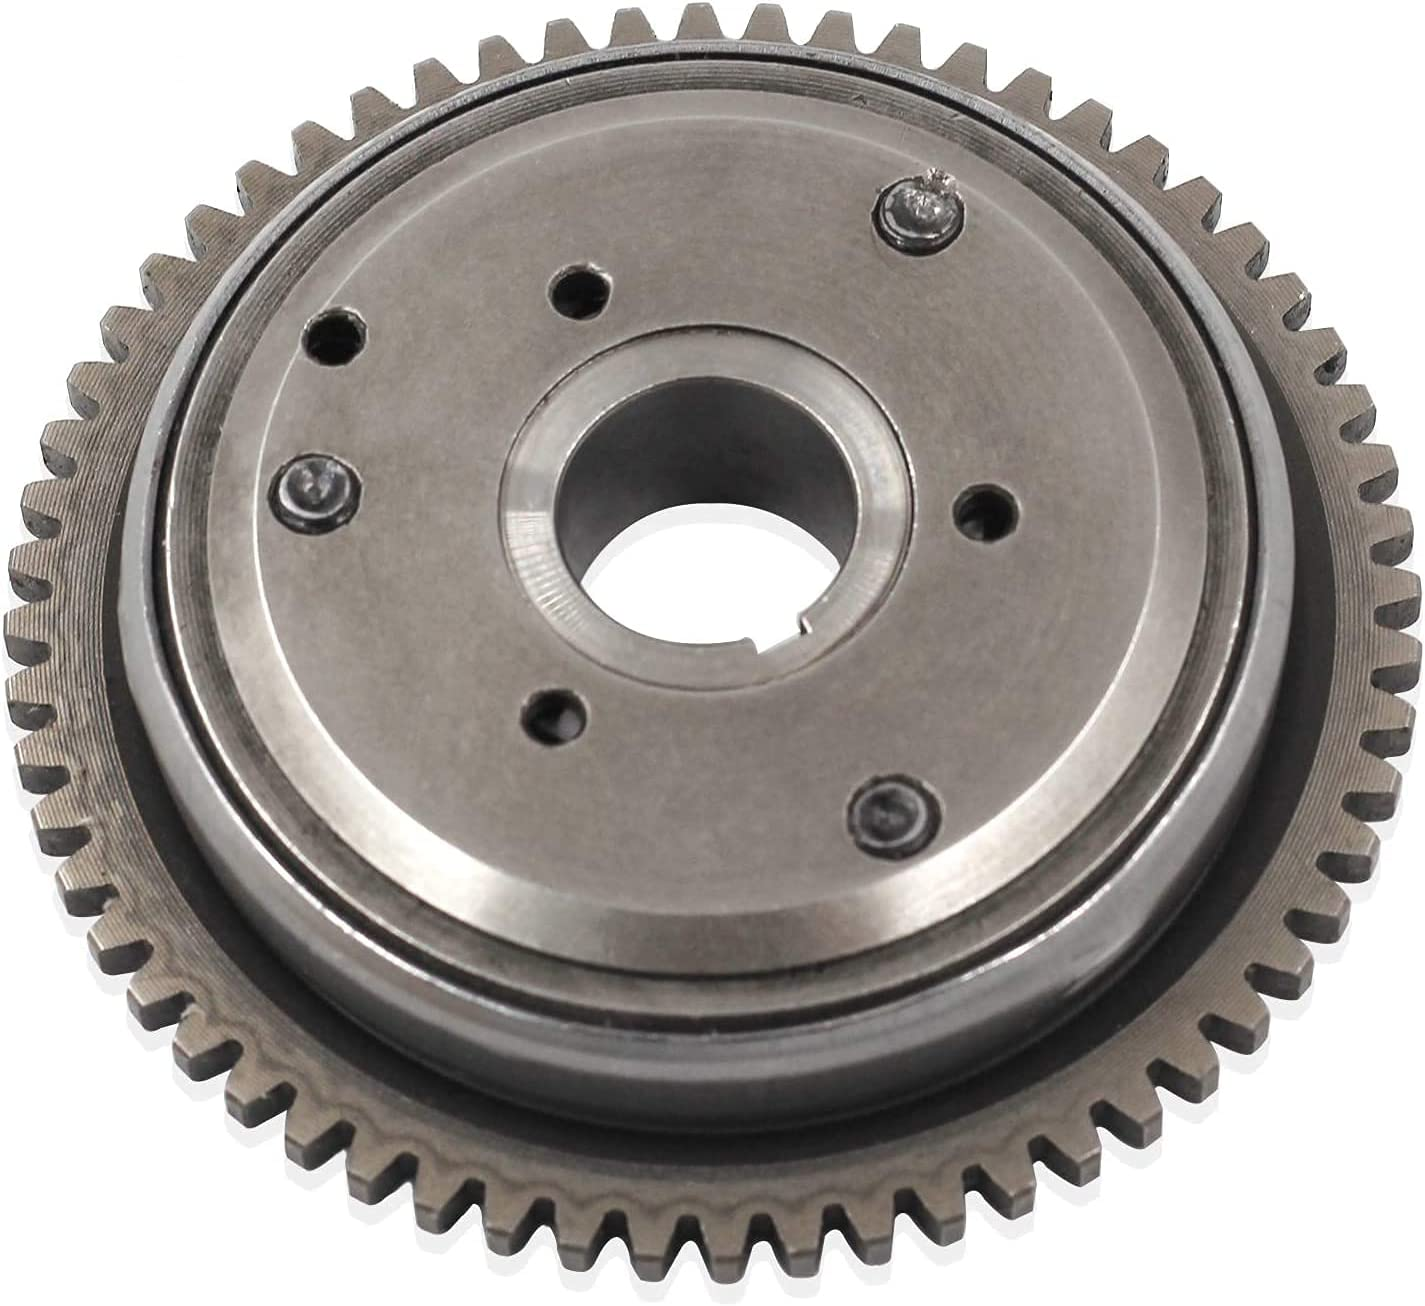 150cc GY6 Max 48% OFF Max 76% OFF STARTER CLUTCH FOR ATV KART SCOOTER MOTORS WITH